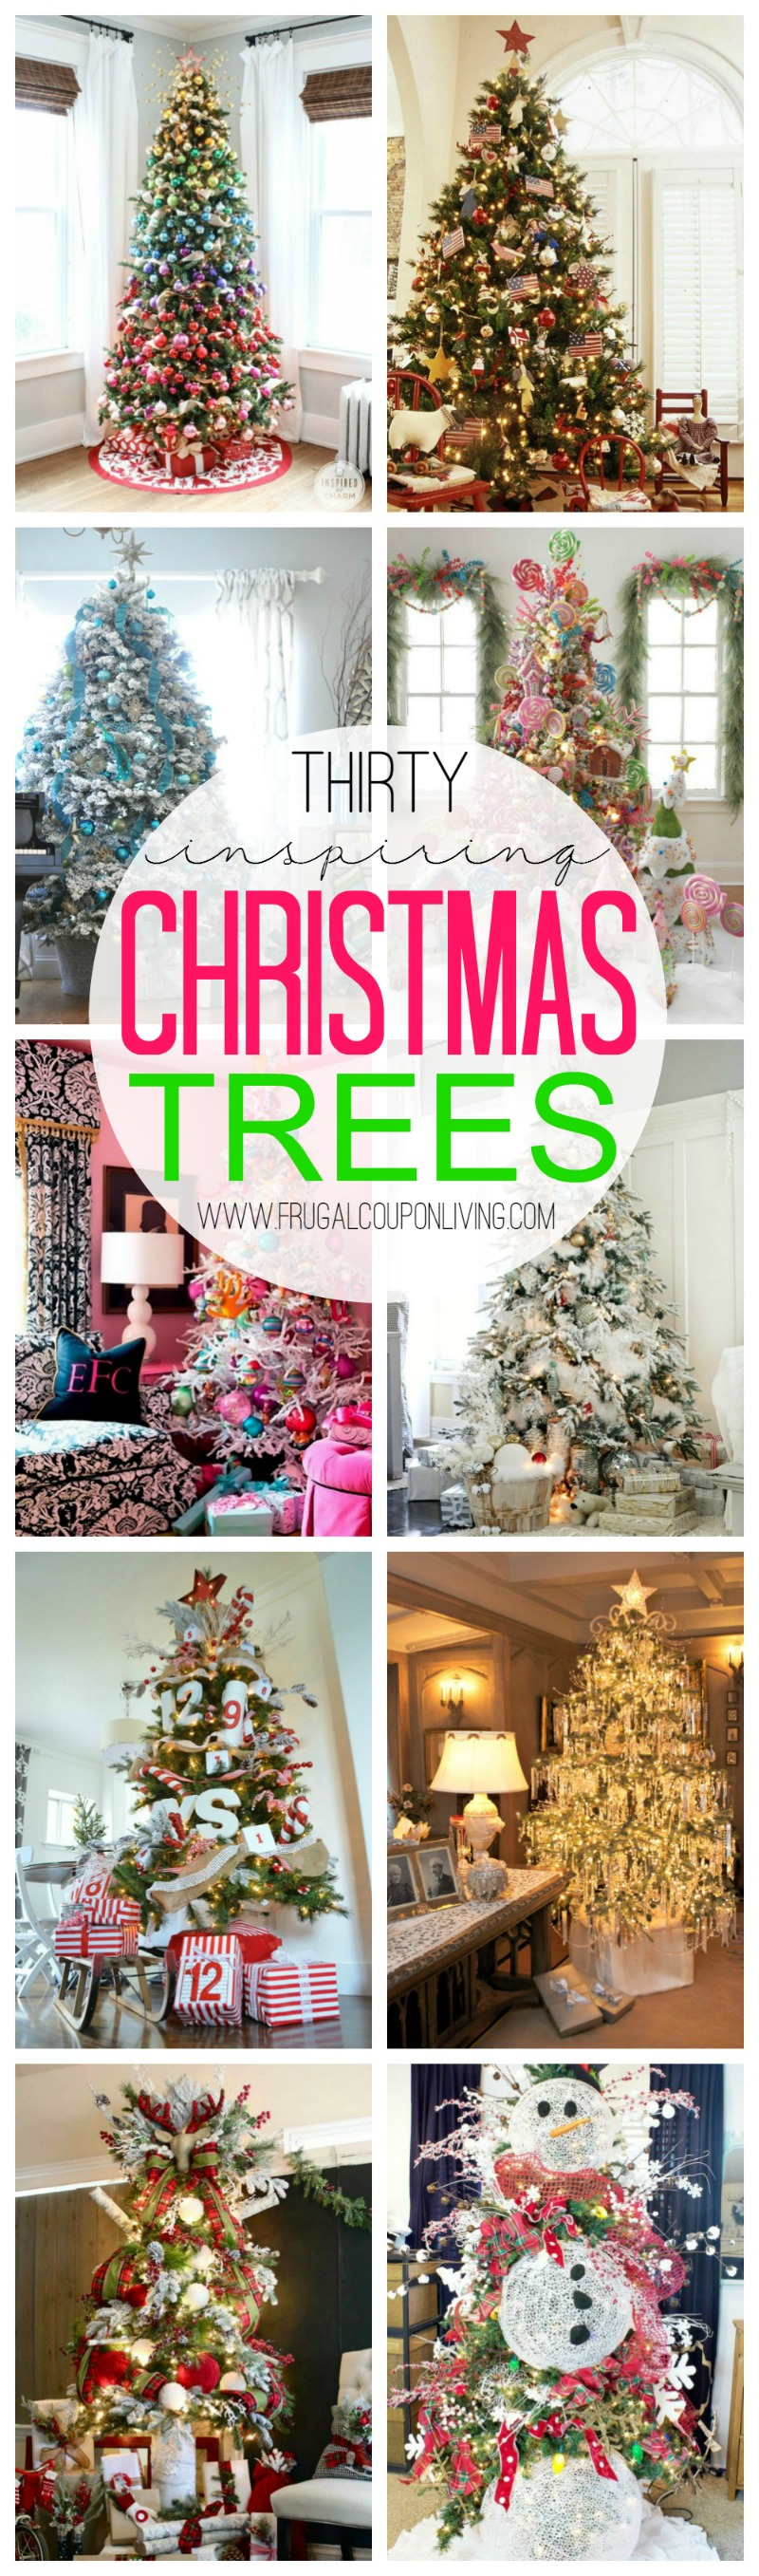 Thirty Inspiring Christmas Trees On